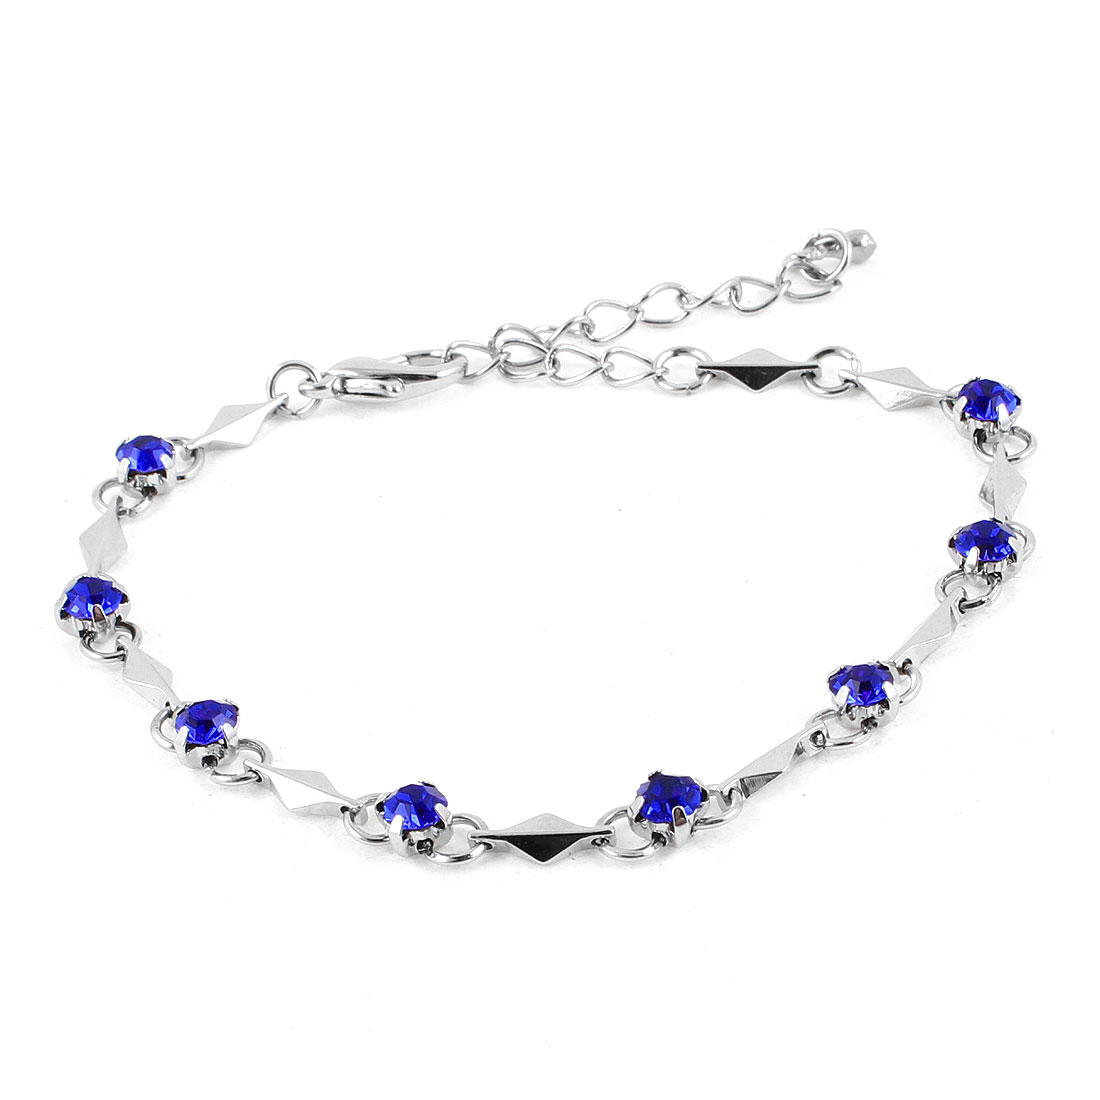 Blue Faux Crystal Decor Metal Wrist Chain Bracelet for Ladies